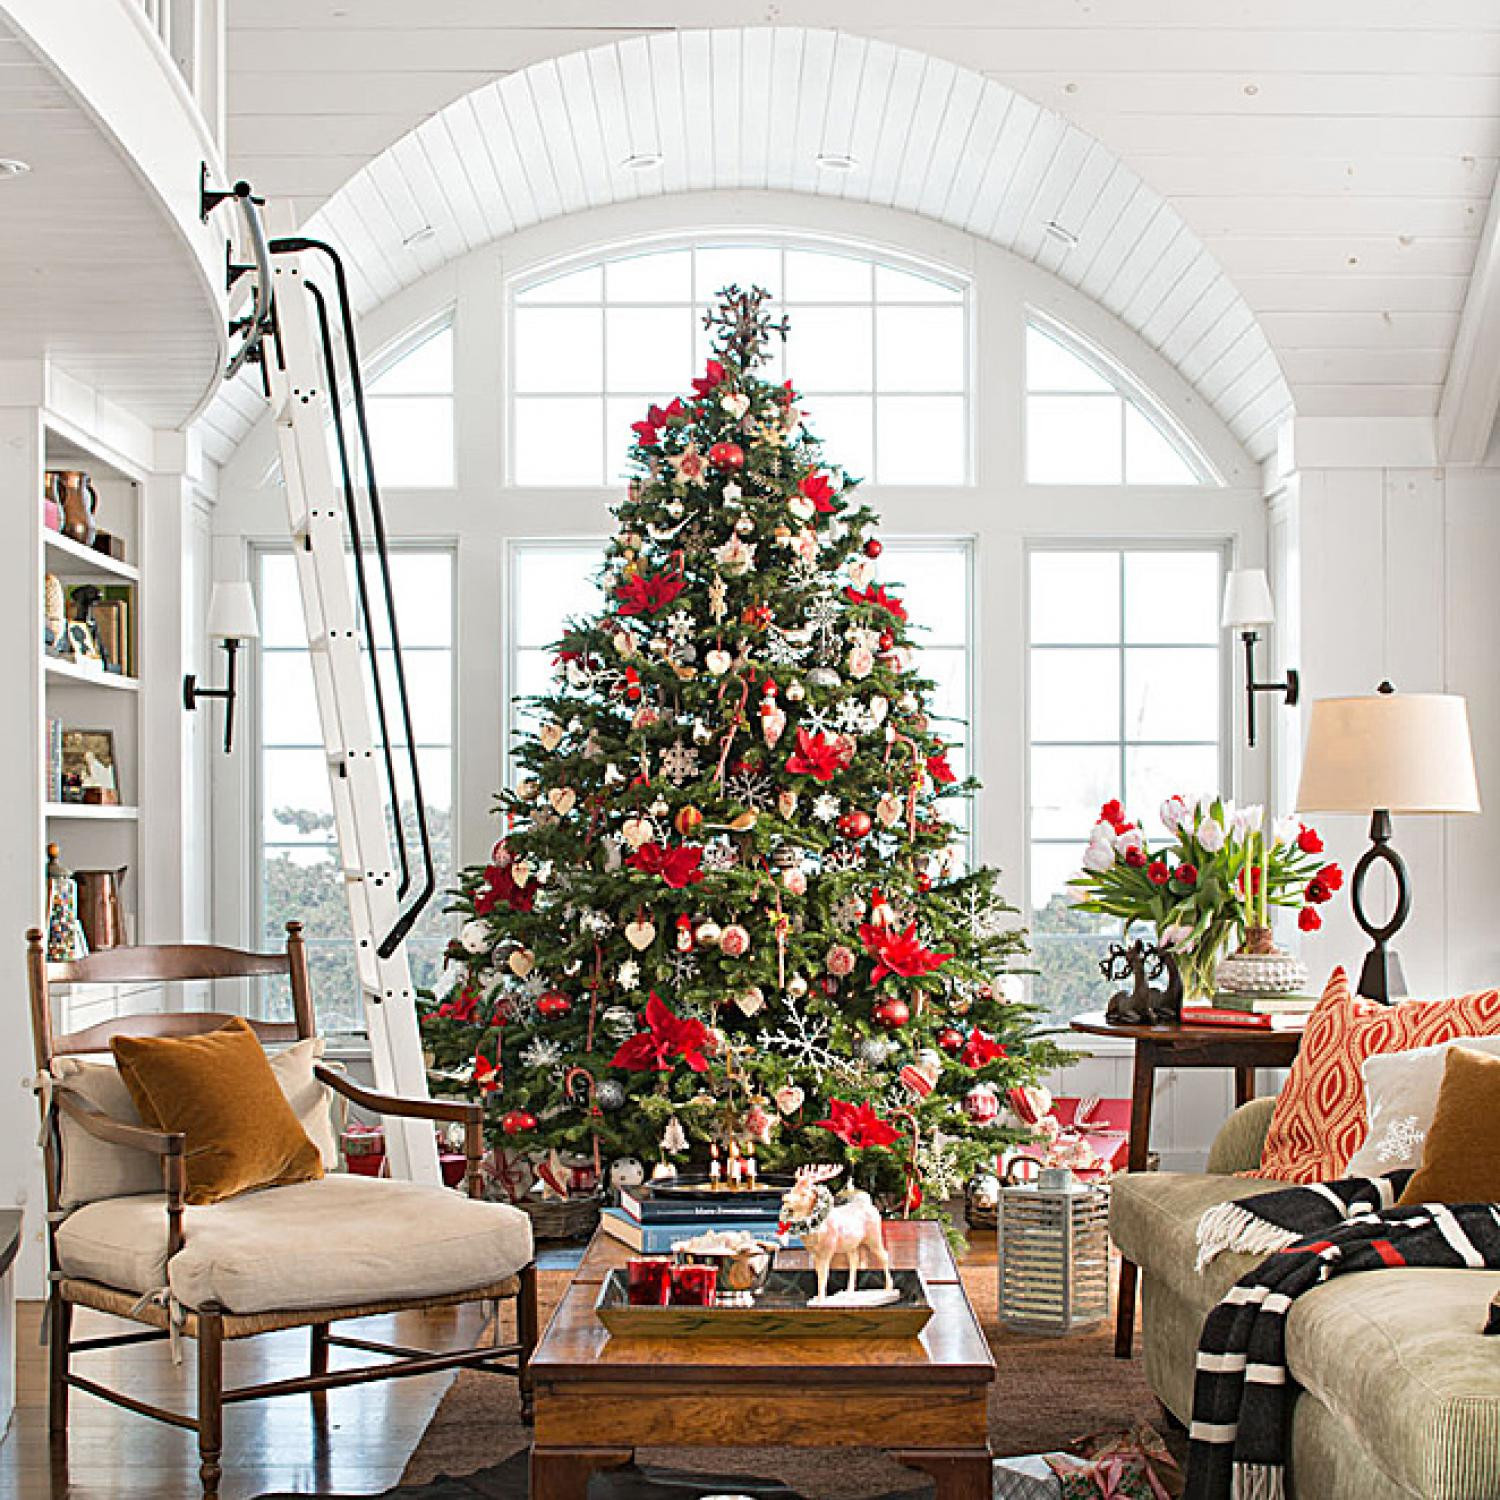 Christmas Decorators Luxury Snowy Vermont Home Ready for Christmas Of Christmas Decorators New 46 Beautiful Christmas Porch Decorating Ideas — Style Estate